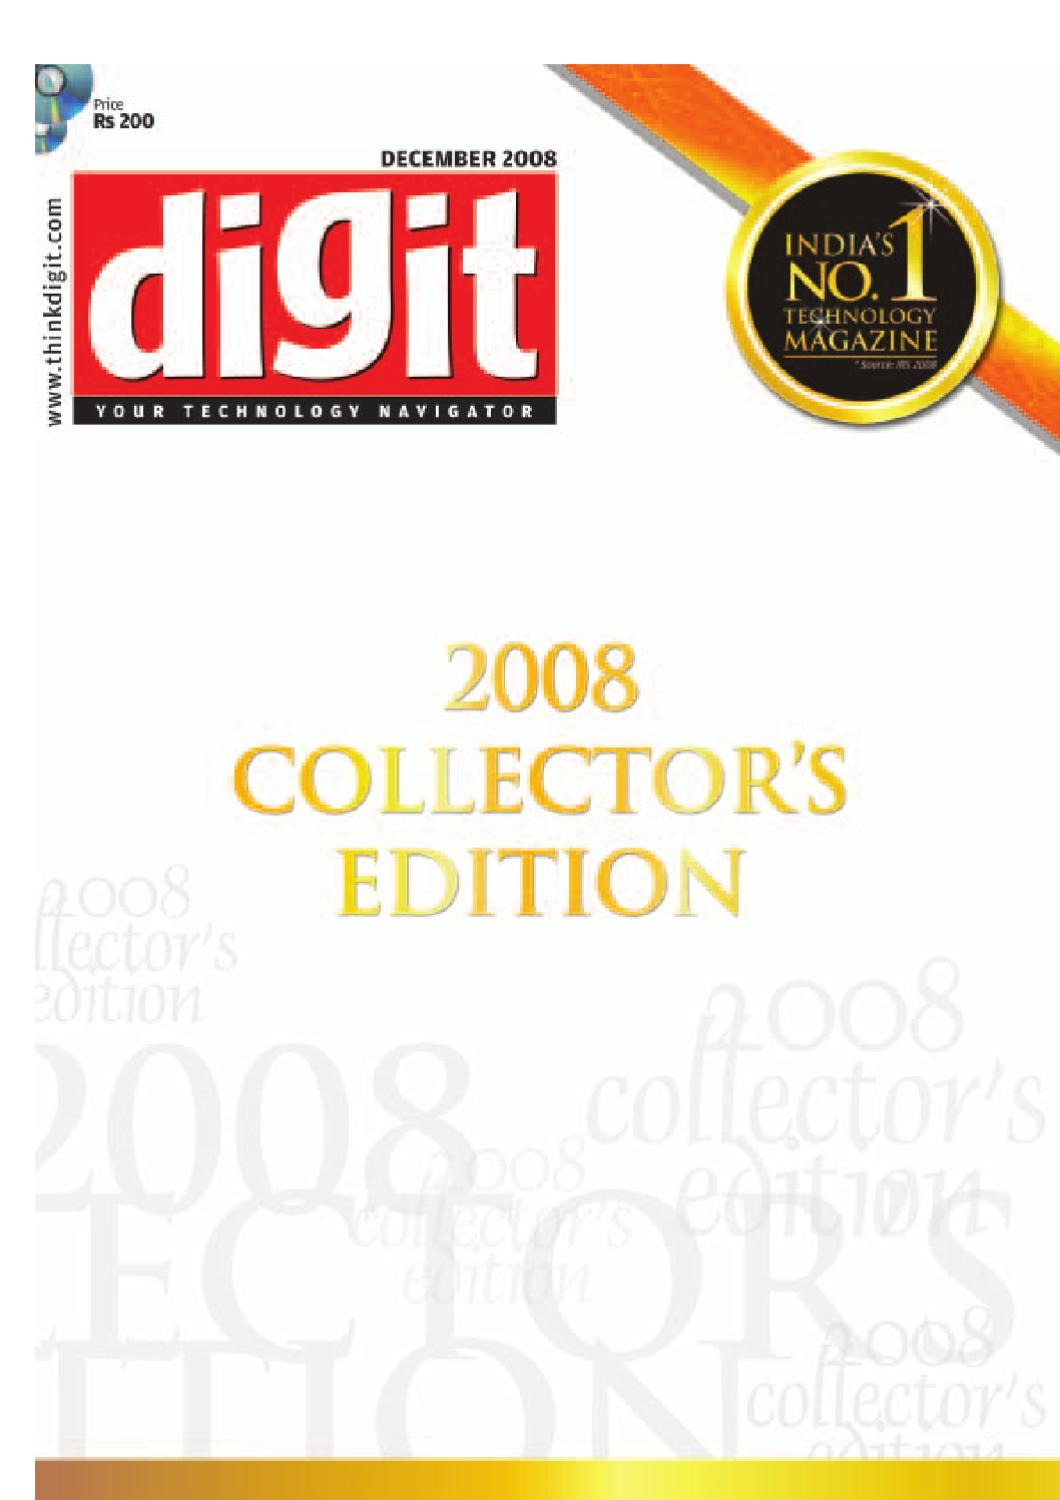 Digit December 2008 By Sreerag Mottal Issuu Line Sim Bb9800 Short Circuit For Repair Gsmforum